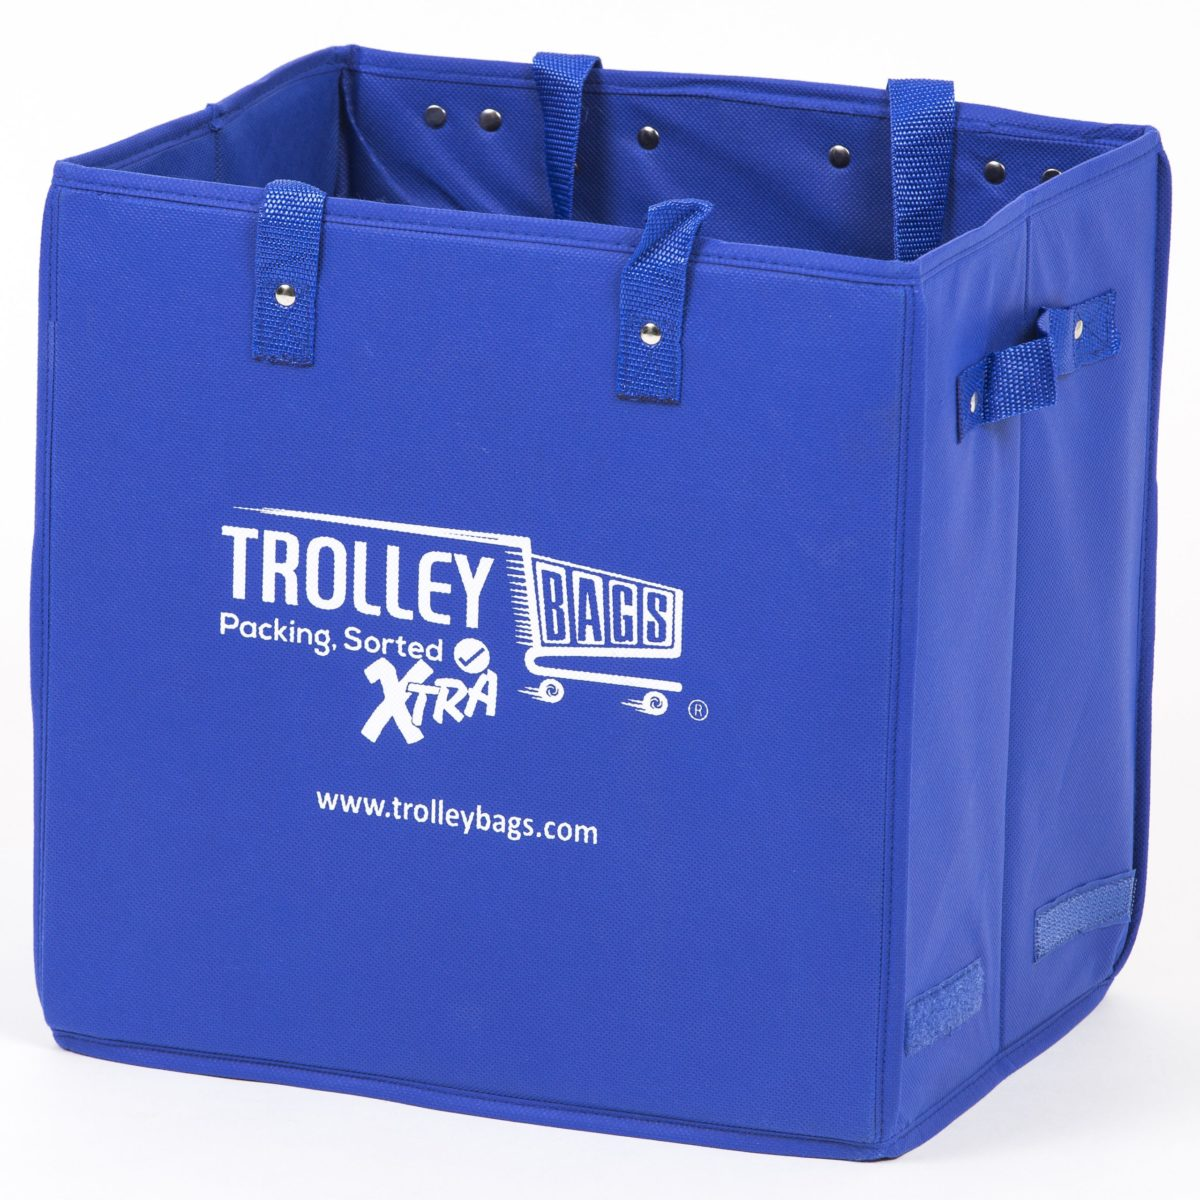 Trolley bags Xtra is stronger and more durable than your regular shopping bags.